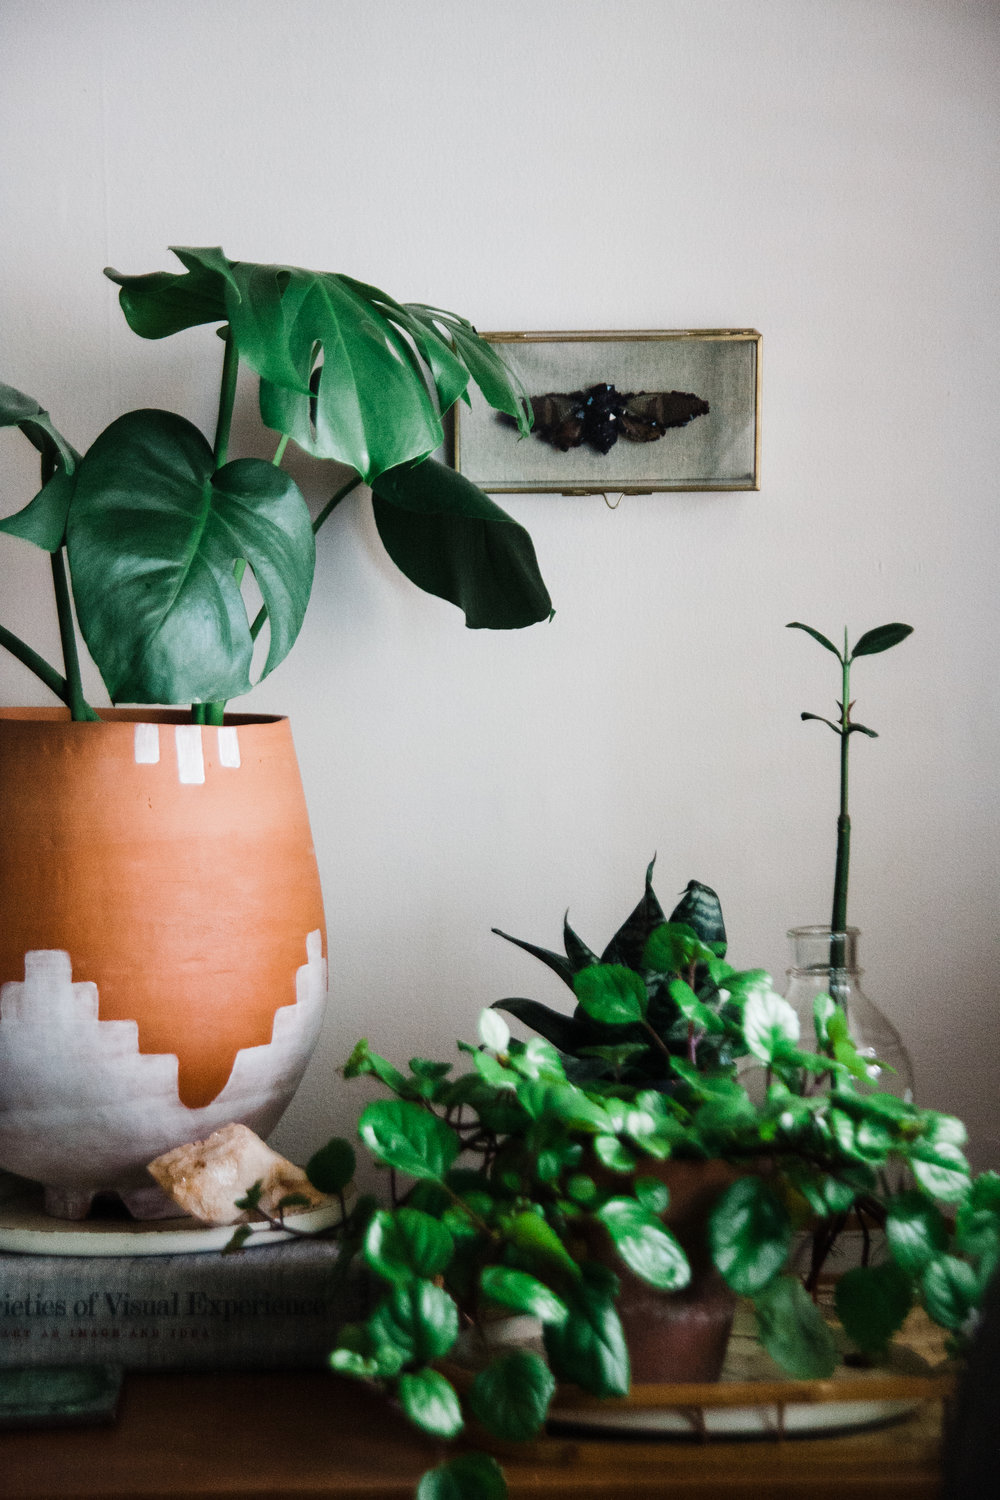 The Midwest winter is cold, but having the plants inside makes homes feel warm and cozy.